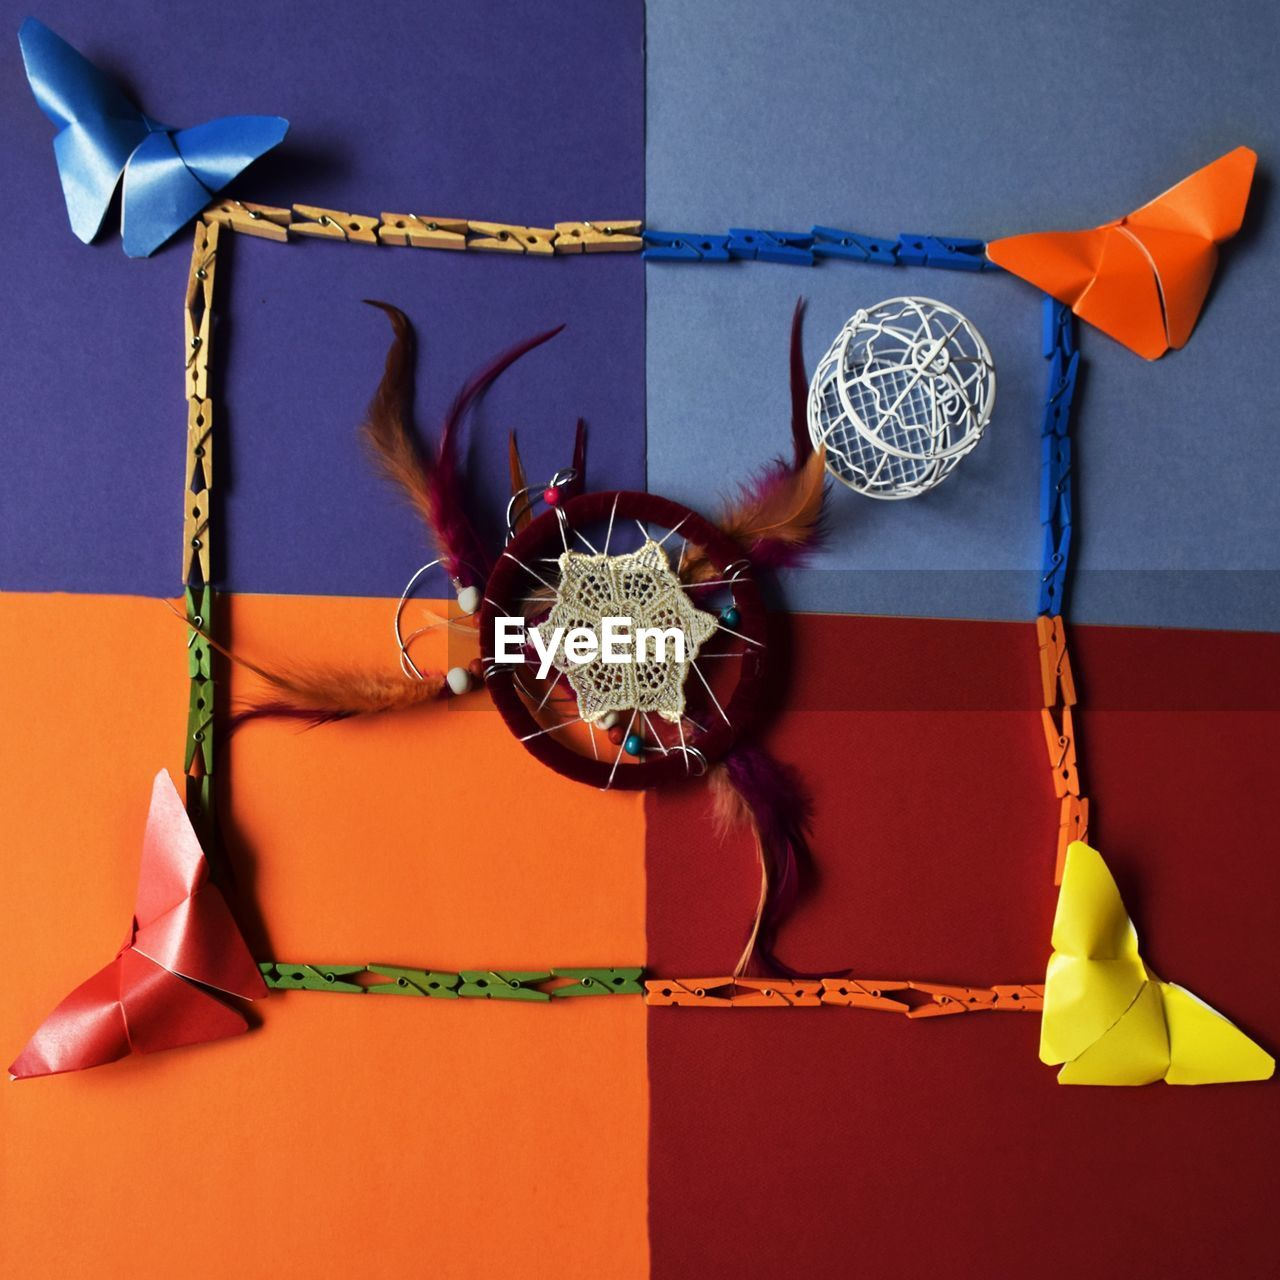 Directly above view of craft product on colorful table